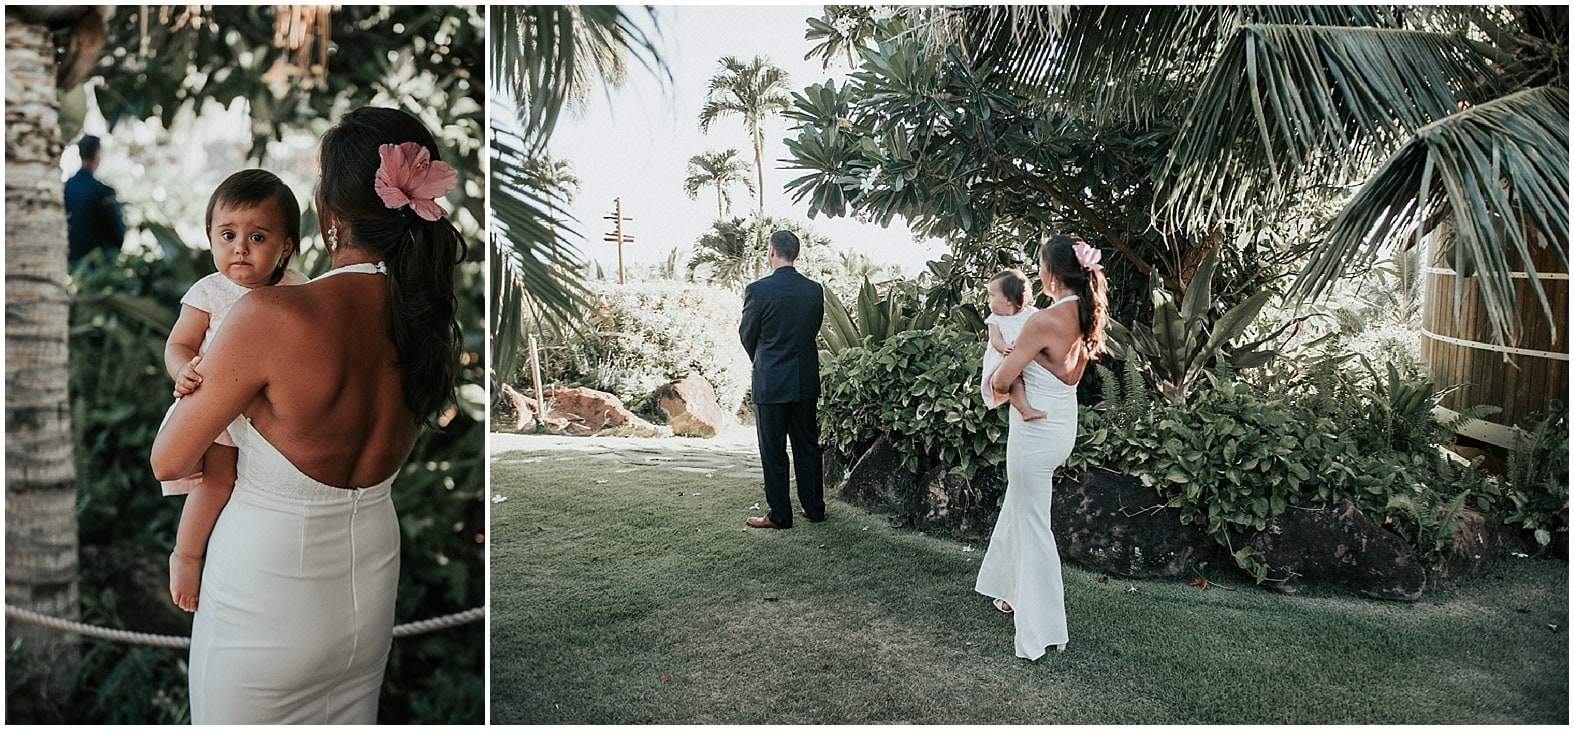 Toni and Brett ~ Lahaina, Hawaii